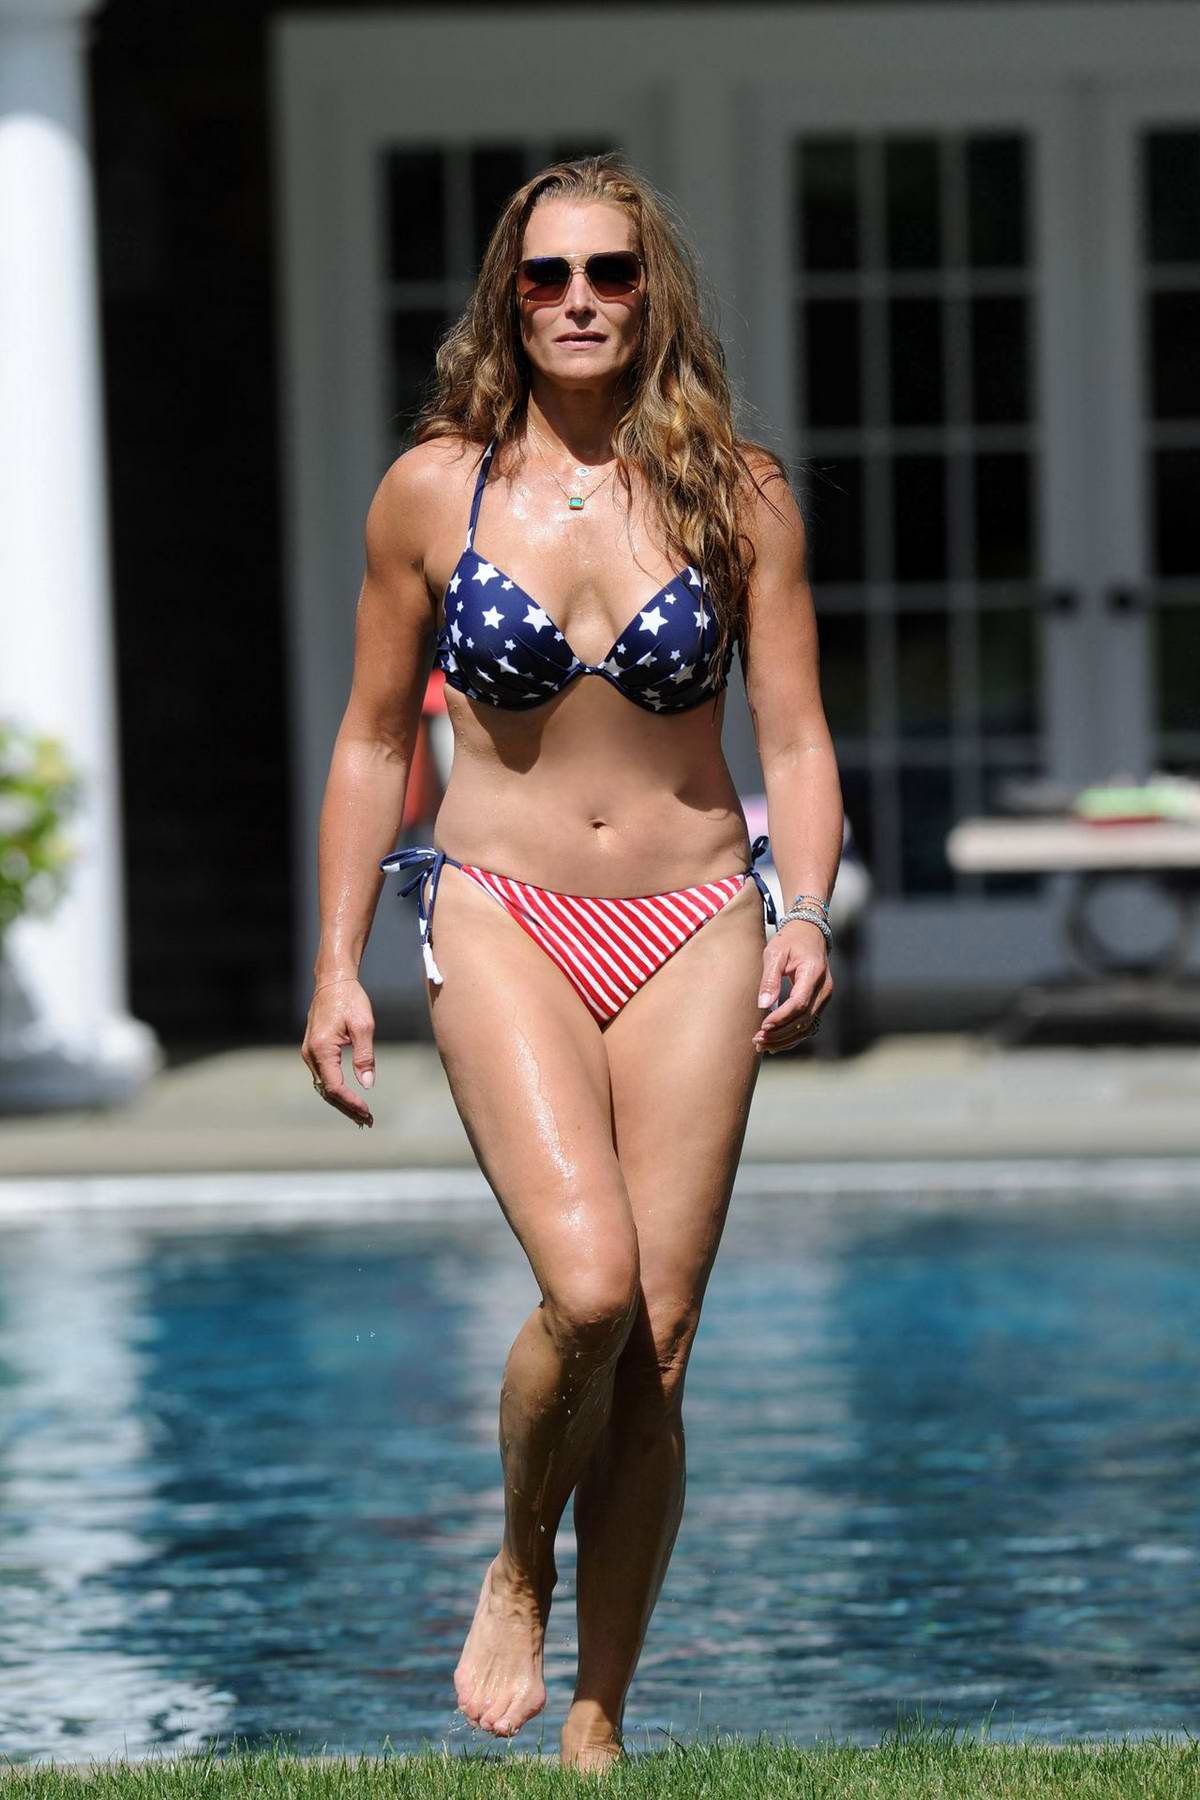 Brooke Shields stuns in a bikini as she takes a dip at her home pool in The Hamptons, New York